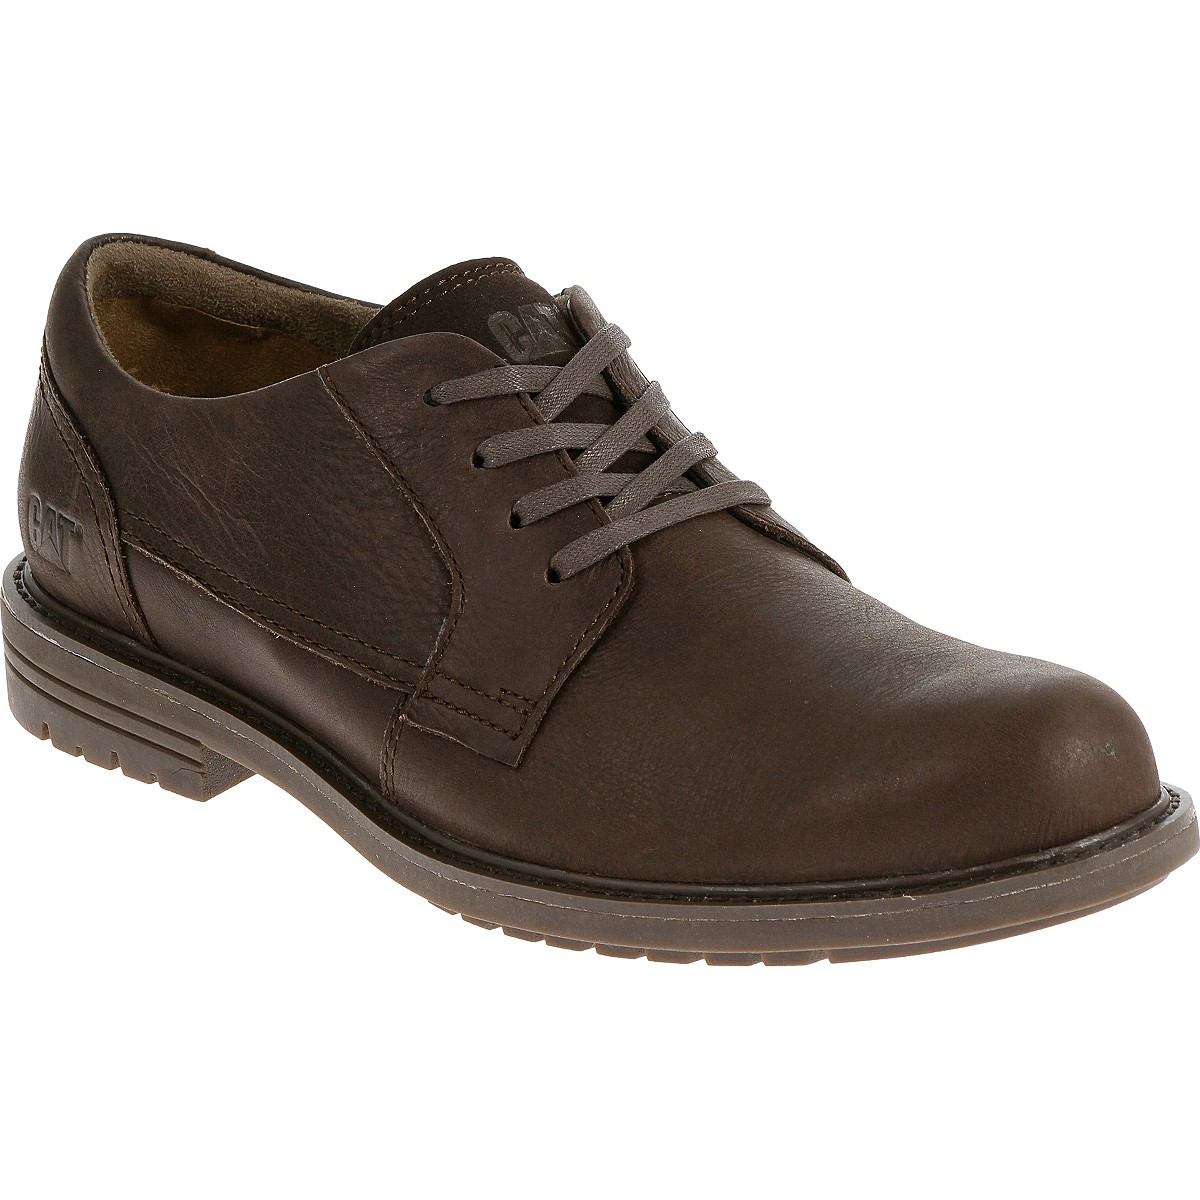 Shop for Stylish Hush Puppies Shoes at Amazon India. Giving you options ranging from casual sneakers to formal boots and pumps, obmenvisitami.tk gives you a tasteful selection of Hush Puppies shoes.